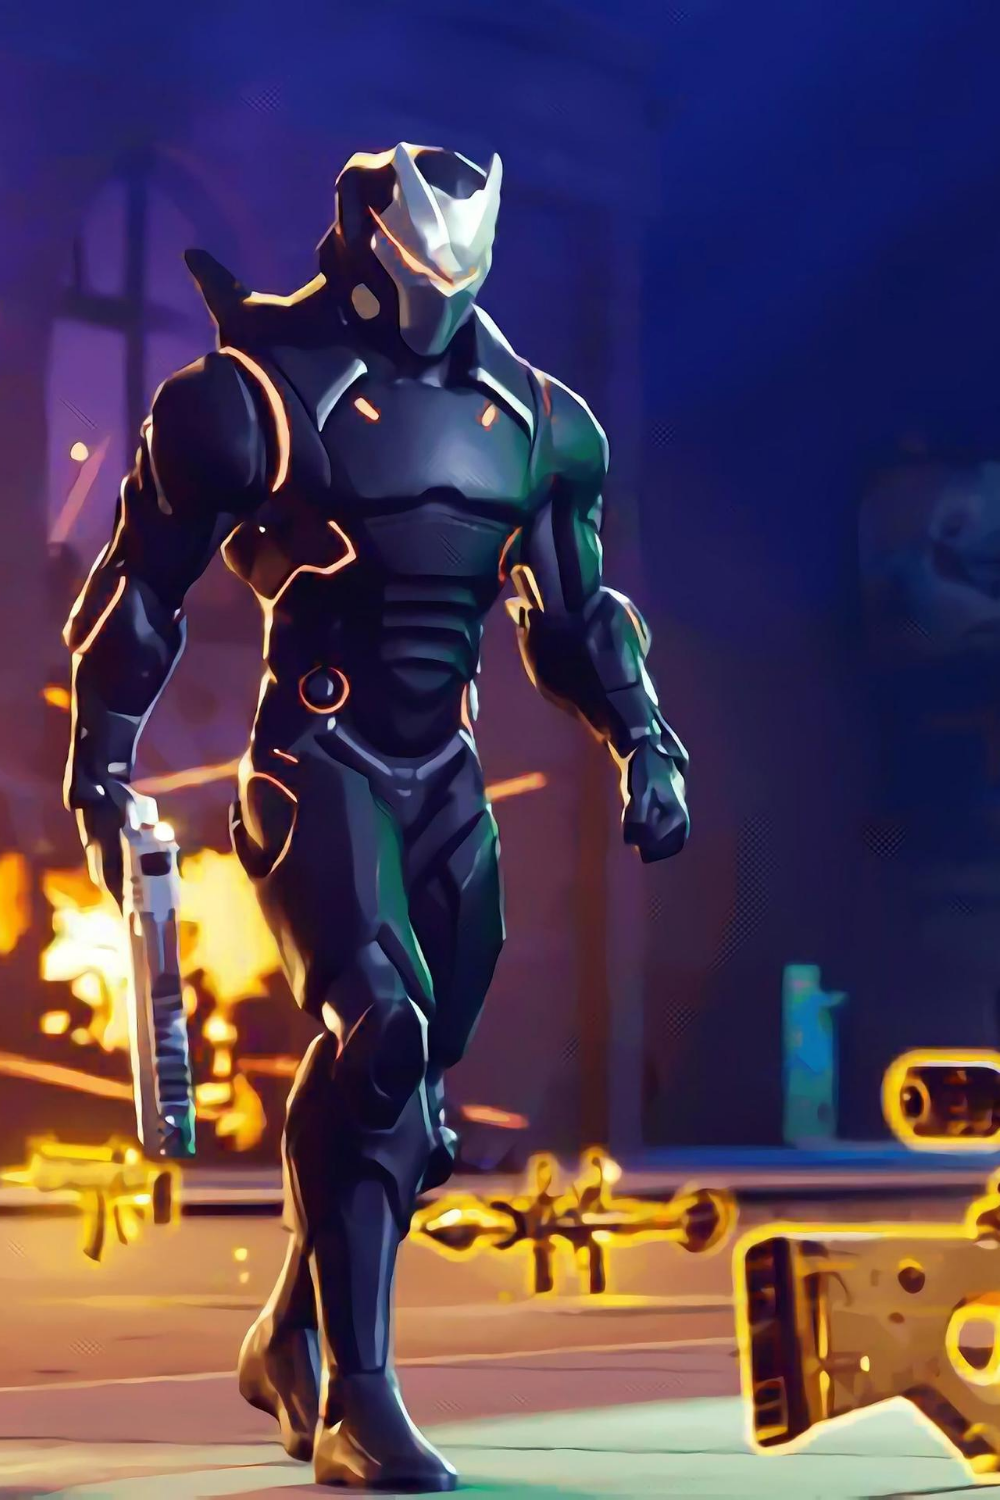 Omega Outfit Fnbr Co Fortnite Cosmetics Fortnite Image Image Icon